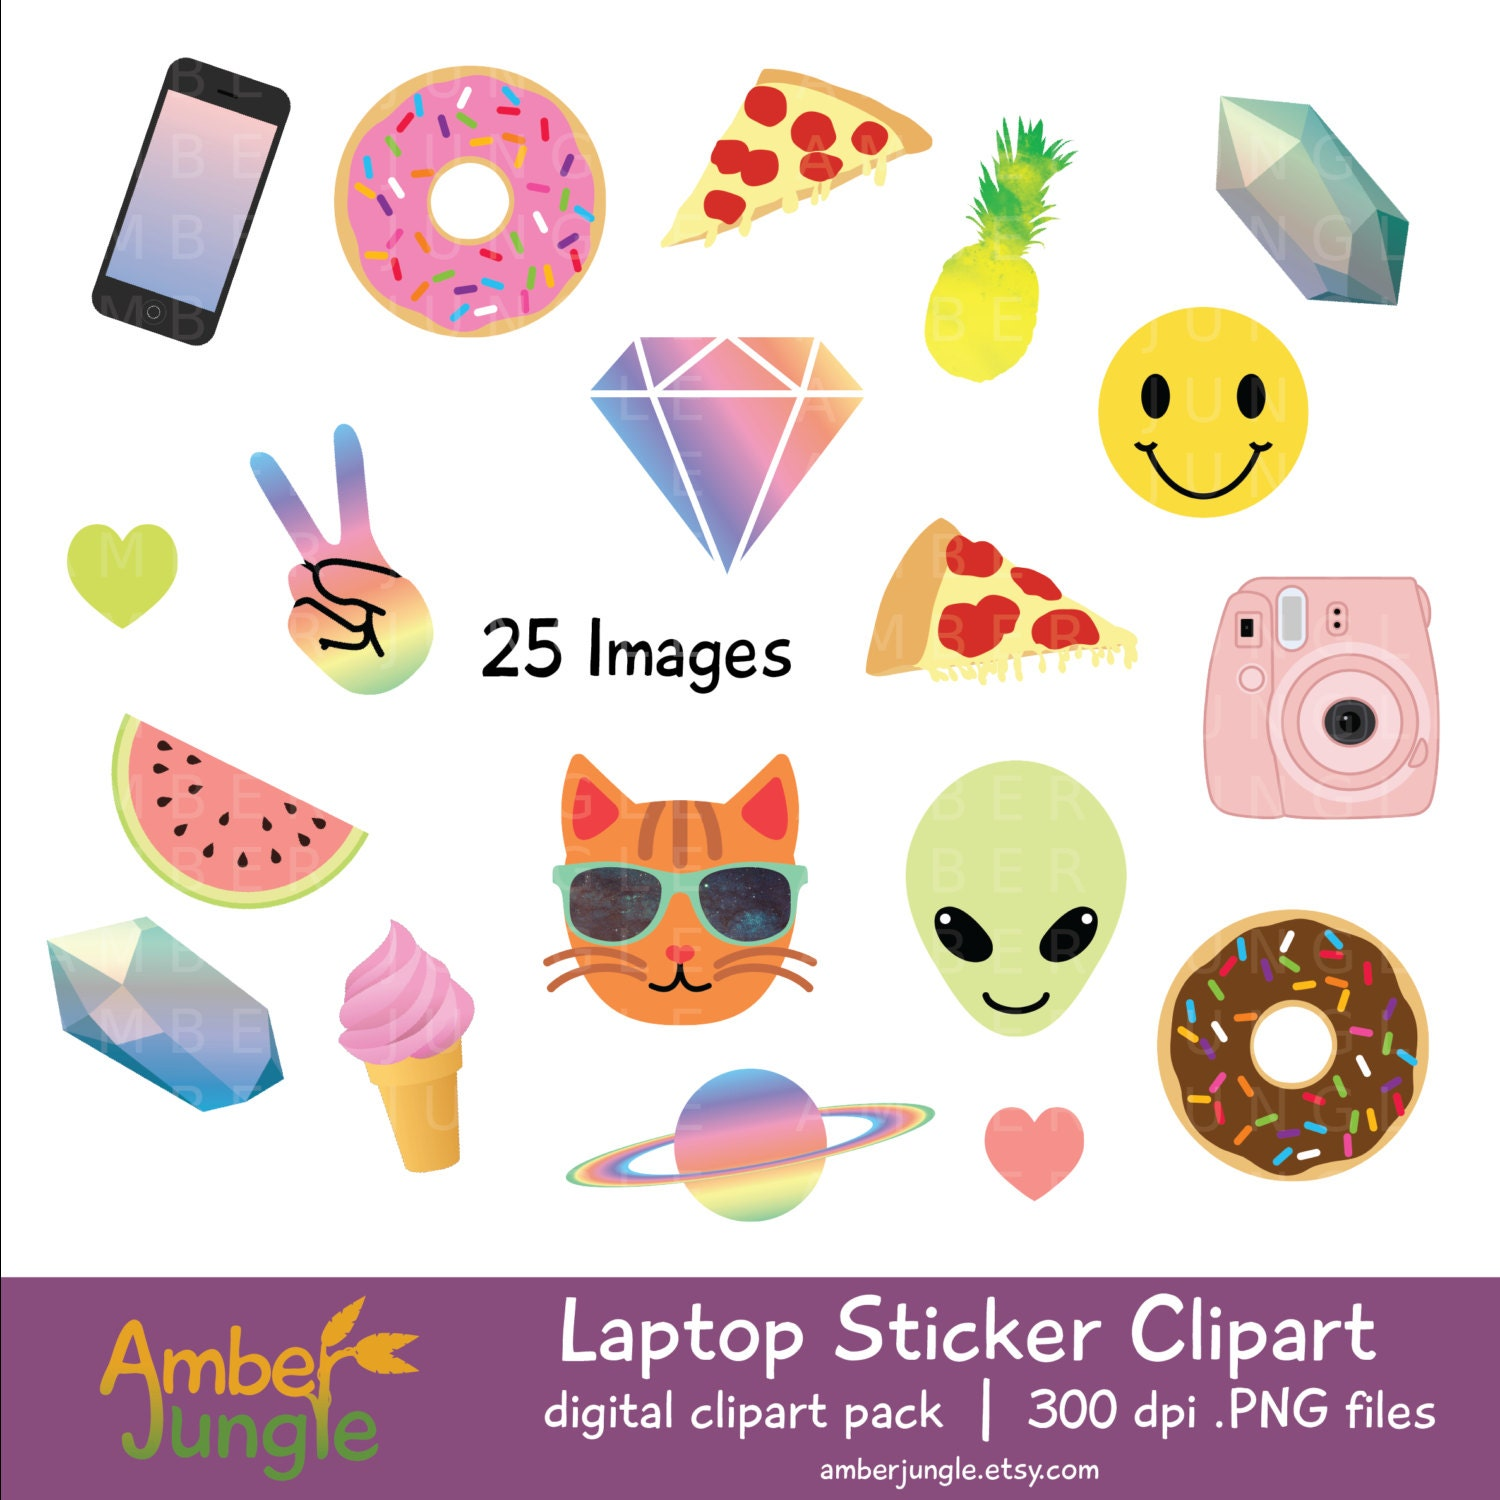 Laptop stickers clipart blogger girl tumblr clip art blog etsy